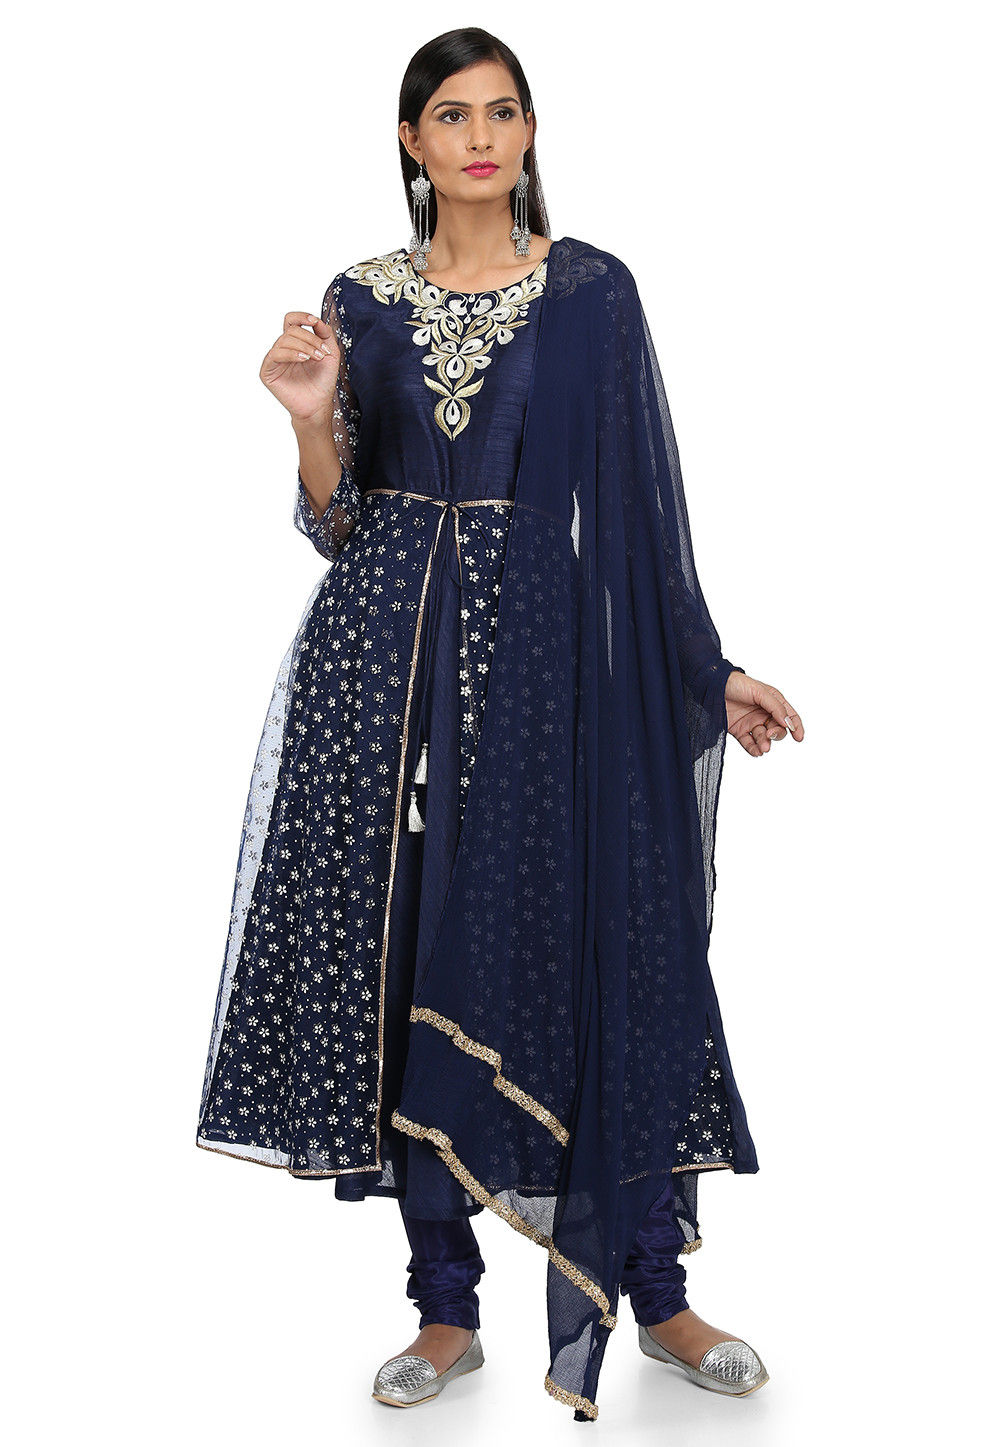 Embroidered Bhagaluri Silk A Line Suit in Navy Blue